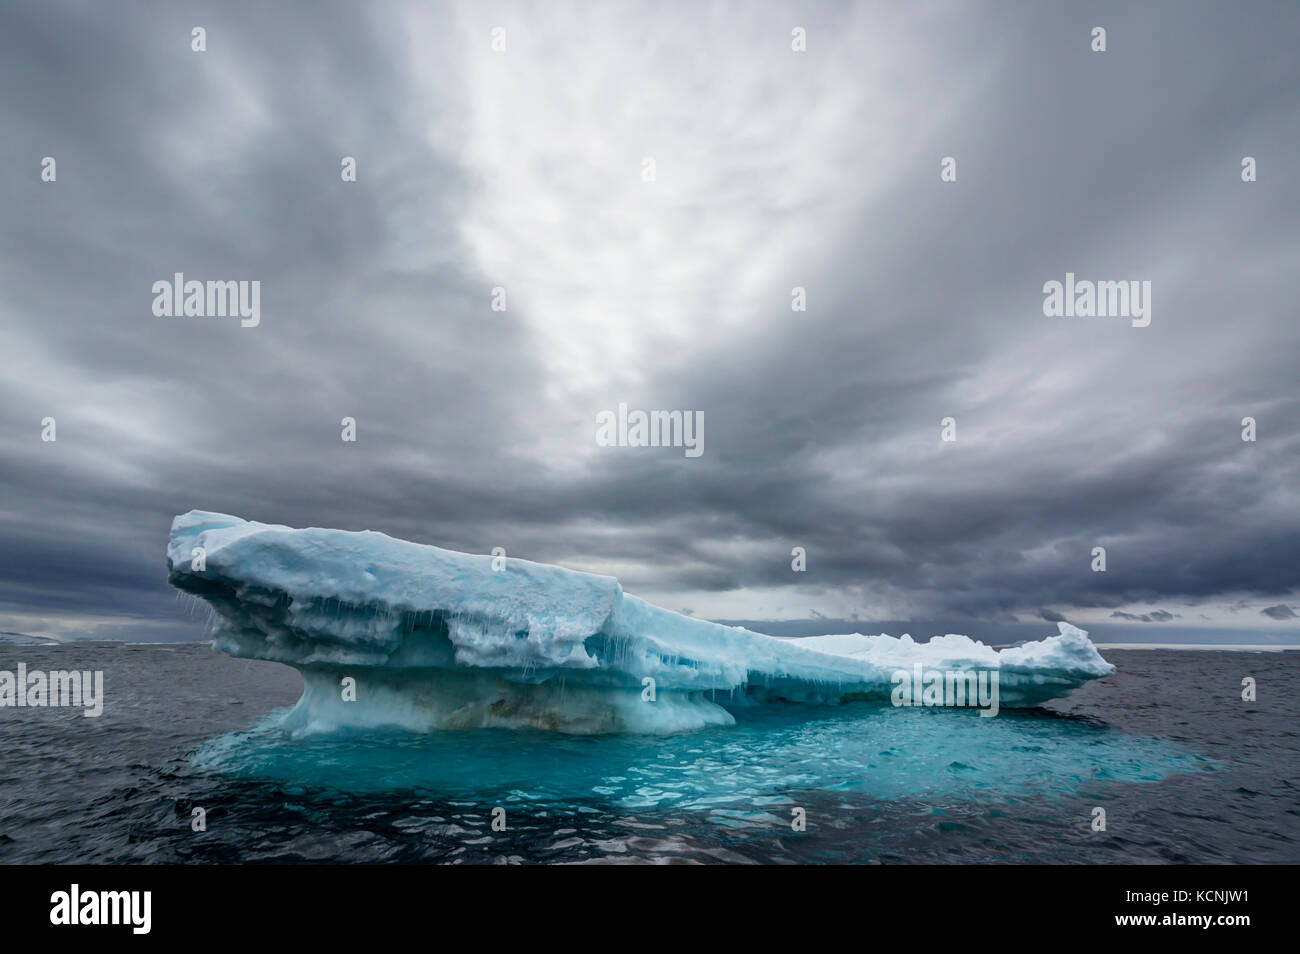 An floating iceberg slowly gives way to the Ocean's inevitable onslaught under a dramatic sky near Joinville - Stock Image